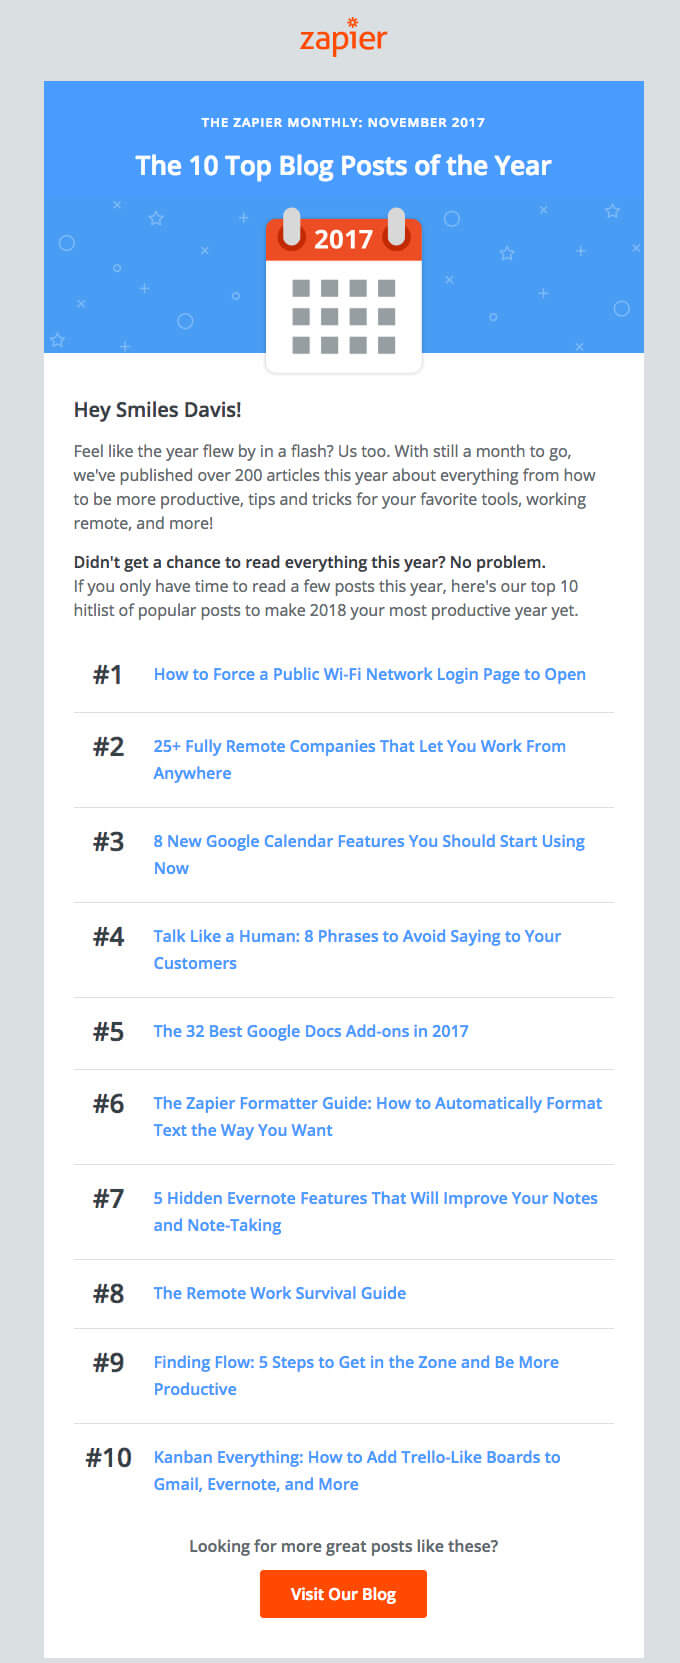 The 10 Top Blog Posts of the Year